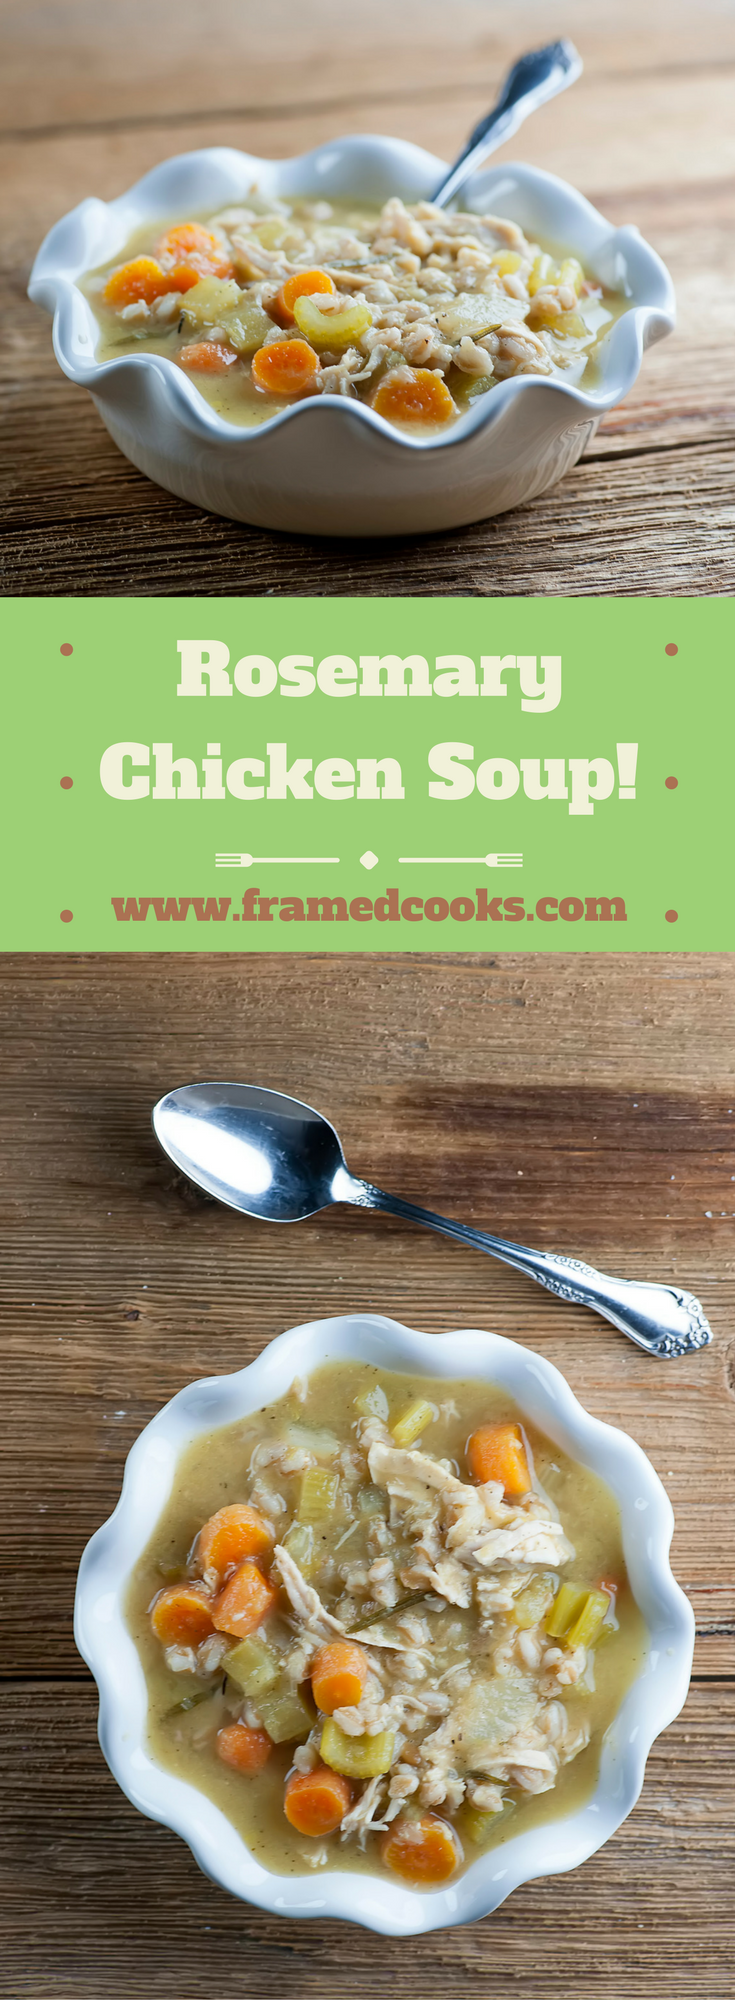 Take homemade chicken soup to aromatic new heights by adding rosemary to the mix!